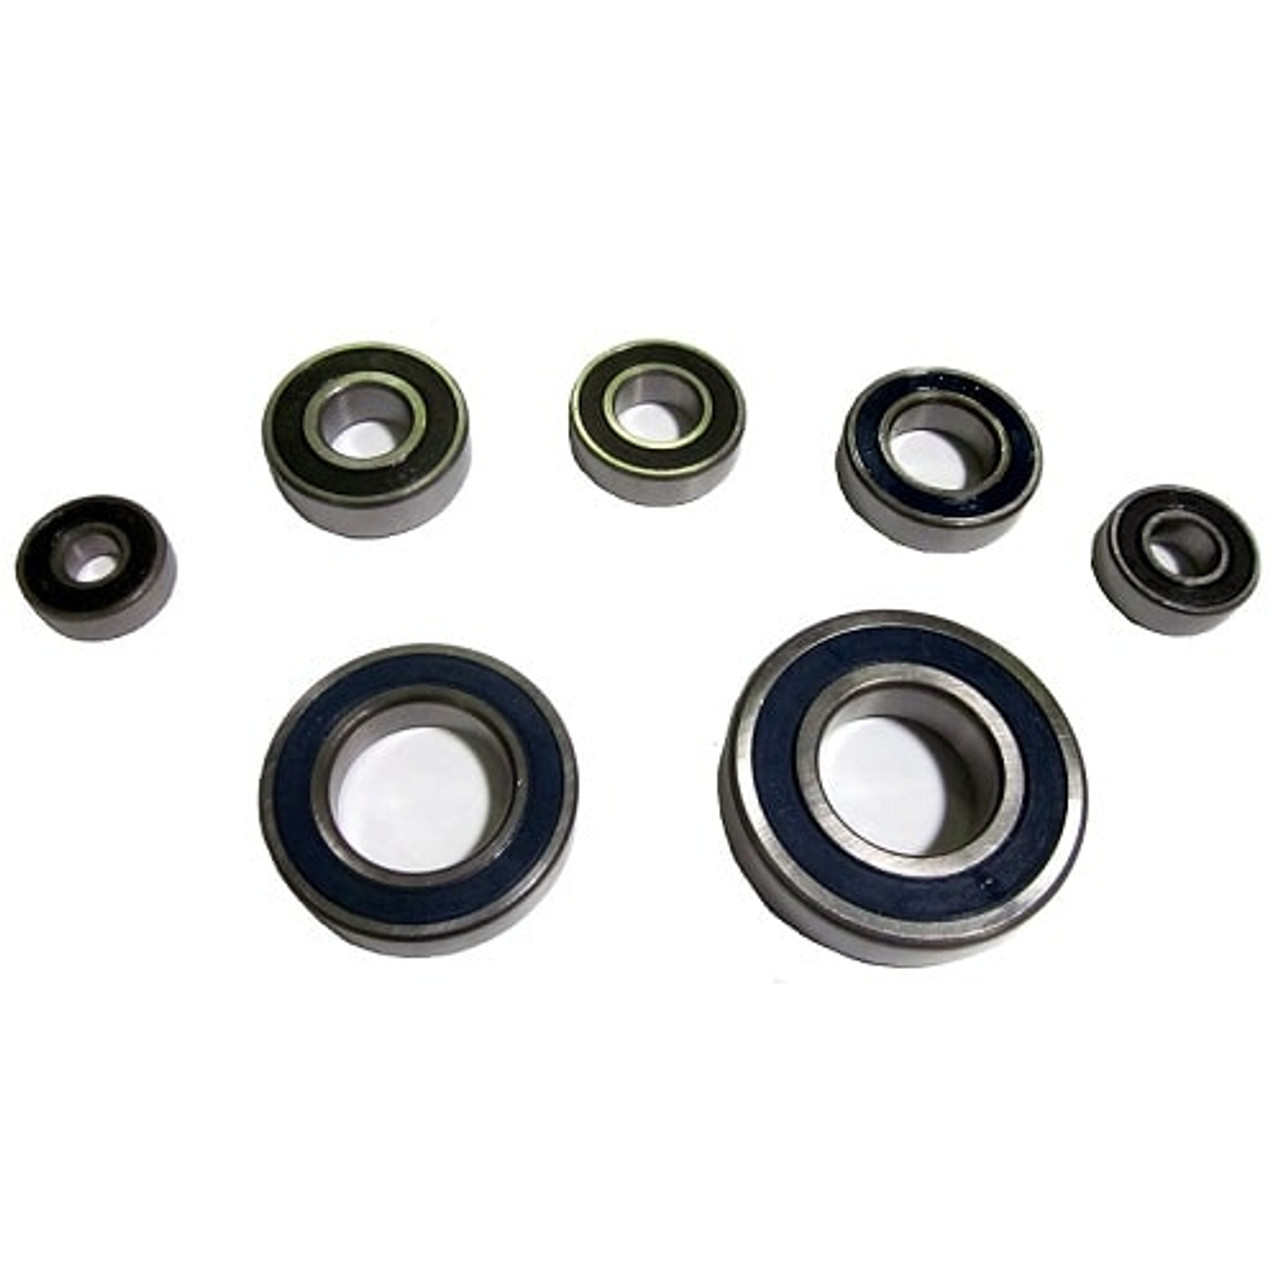 BEARING 6204 for TrailMaster Go-kart